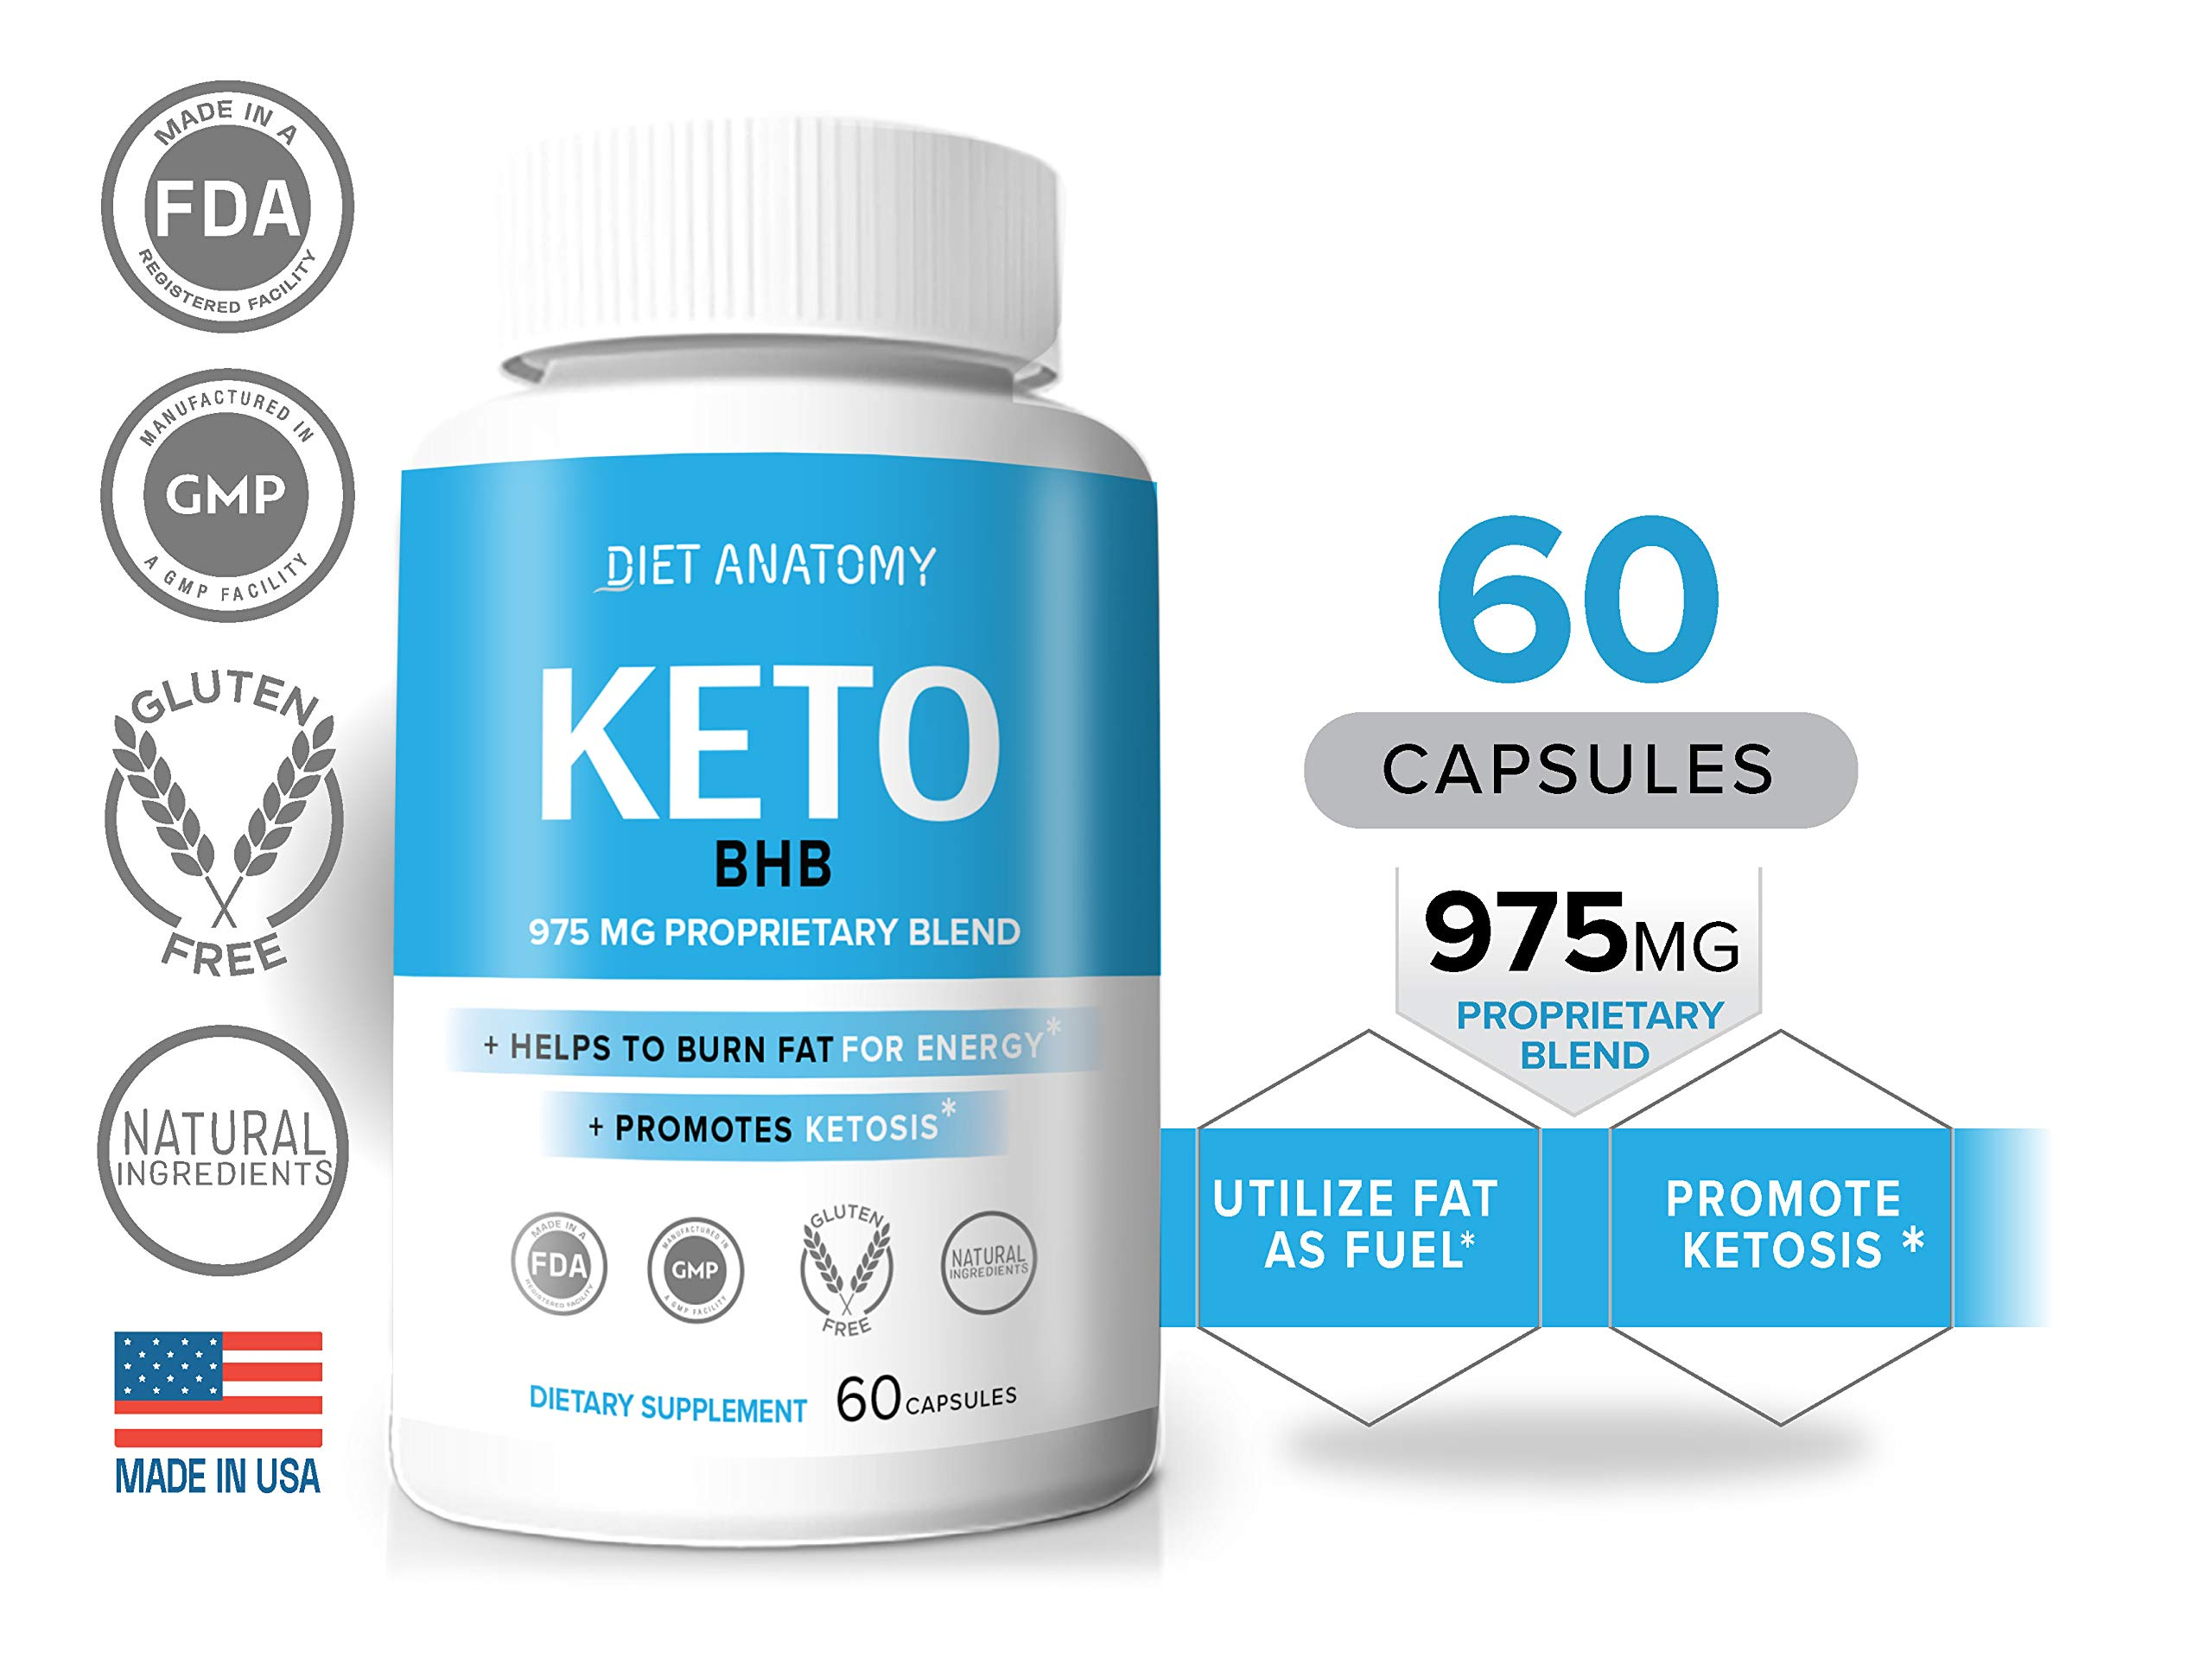 Diet Anatomy Keto, 975MG Proprietary Blend, Helps to Burn Fat for Energy, Promotes Ketosis